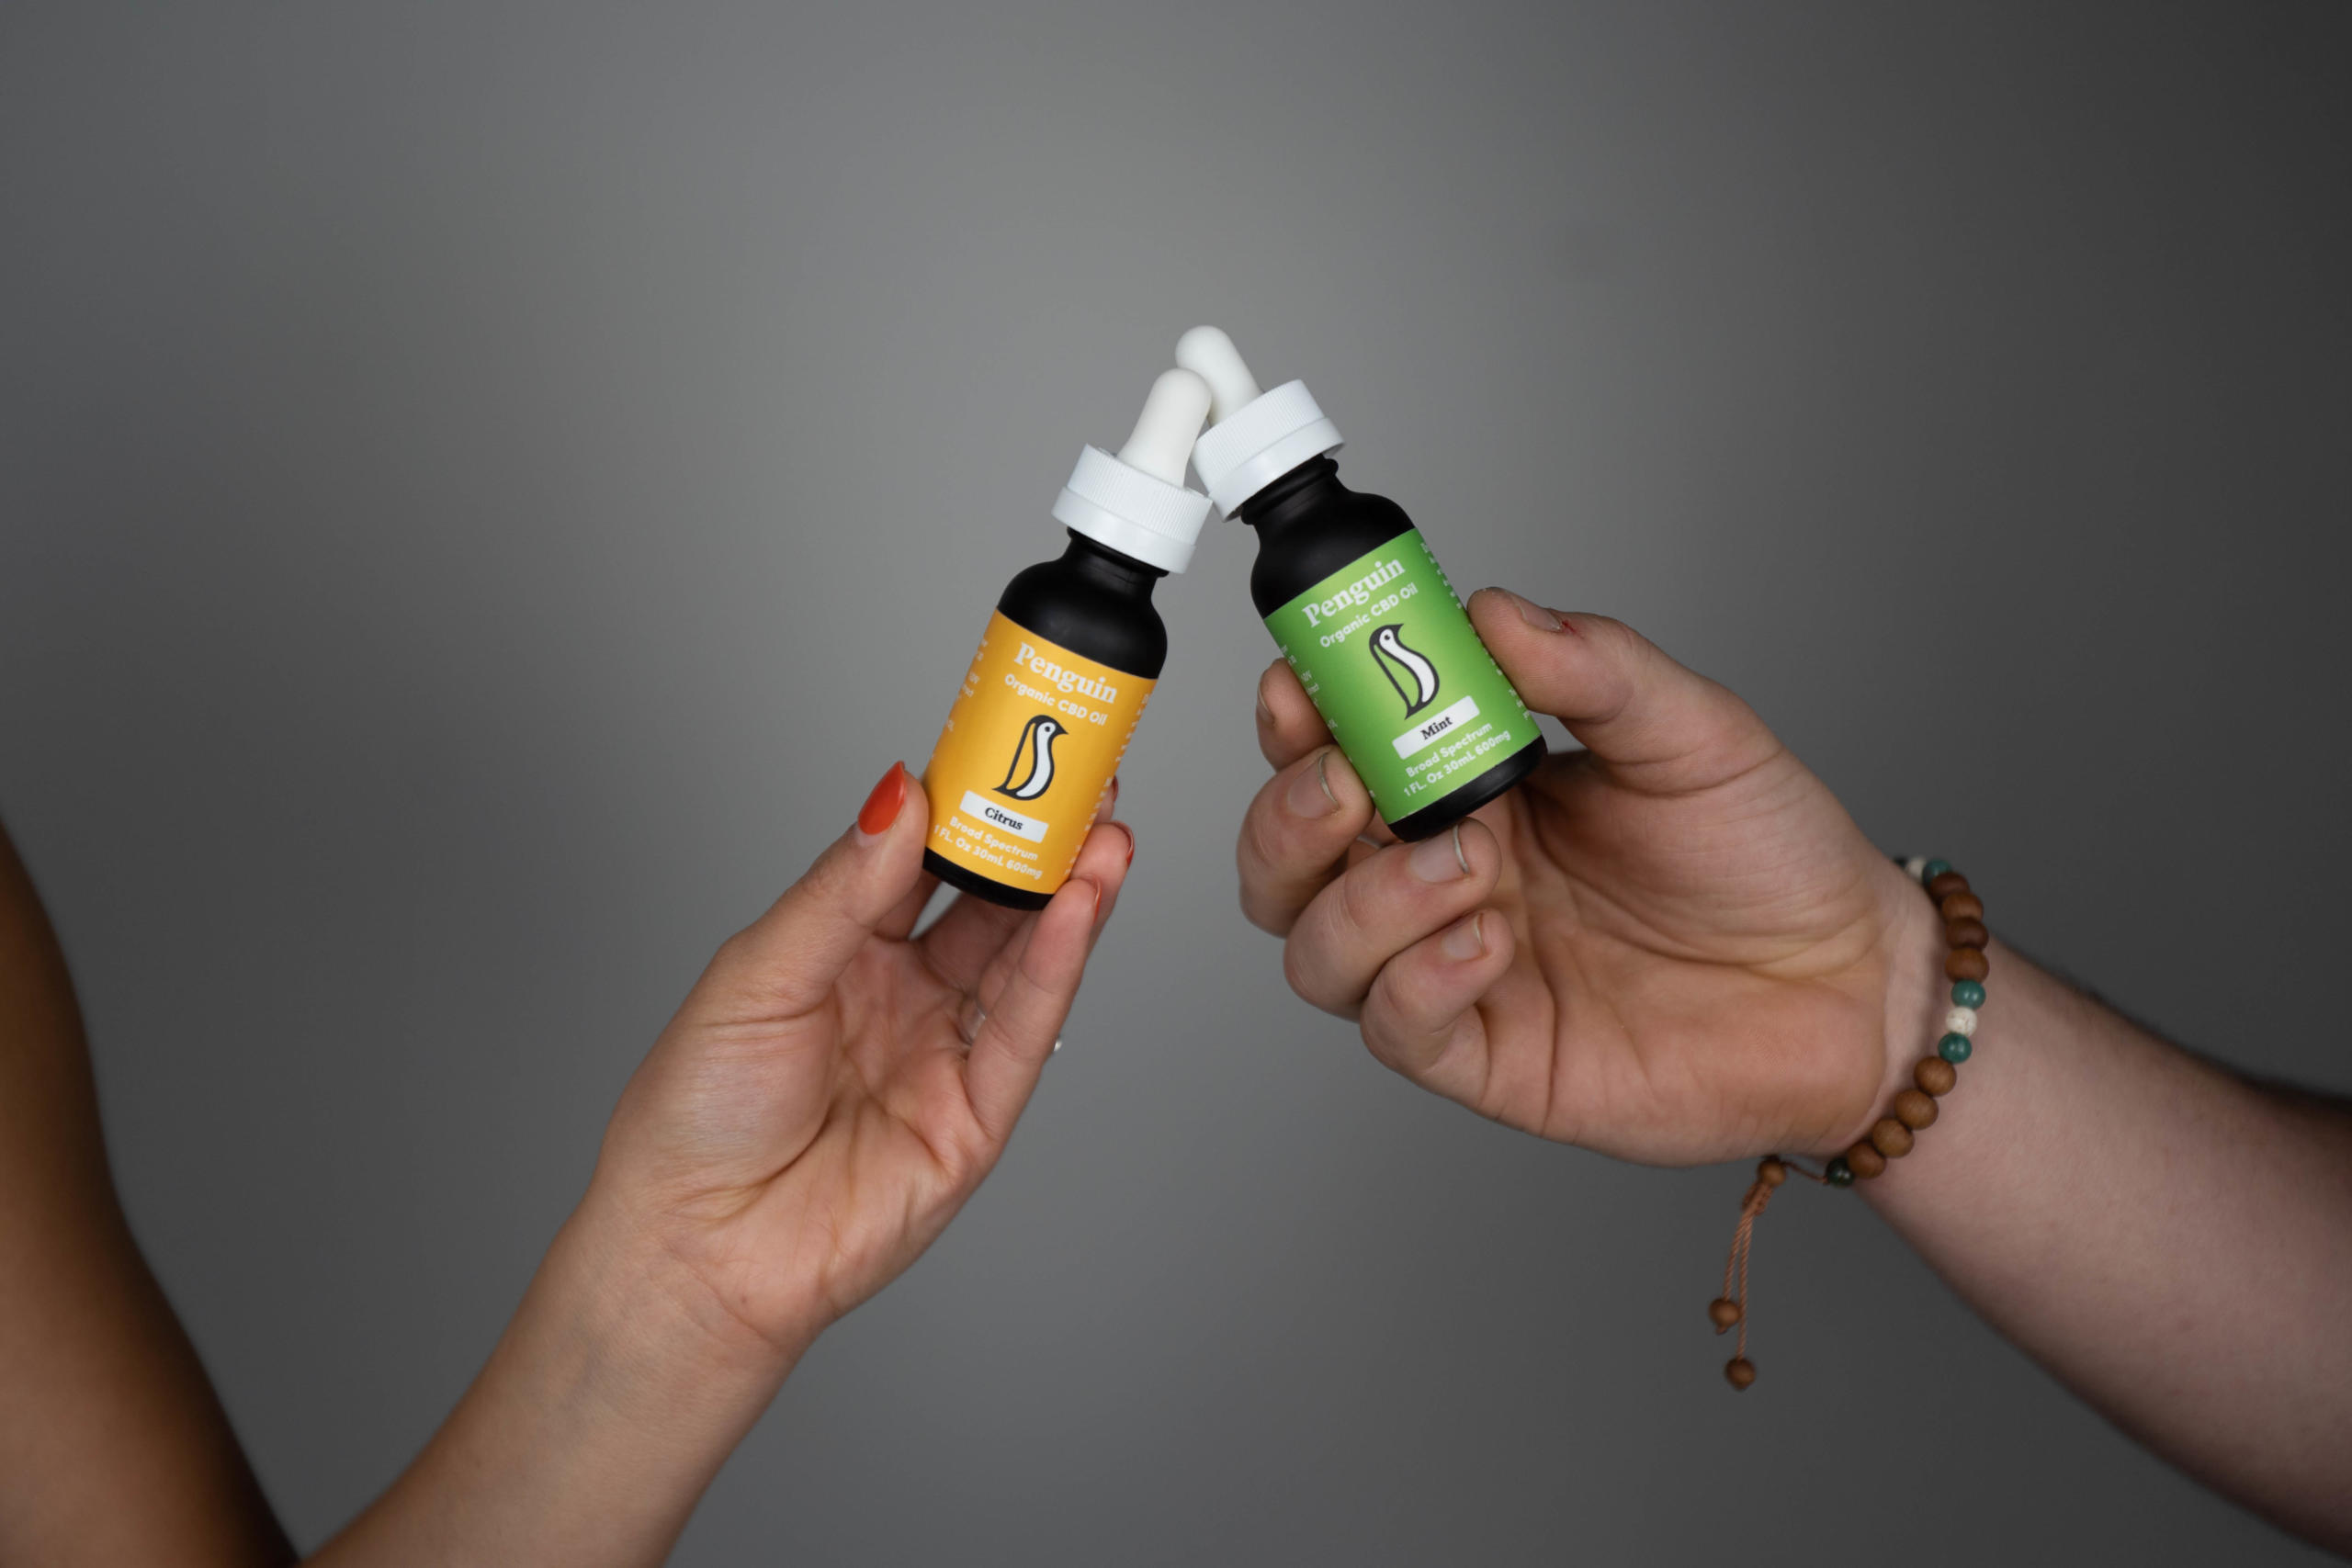 18 Best CBD Brands   Reviewed for ...ministryofhemp.com